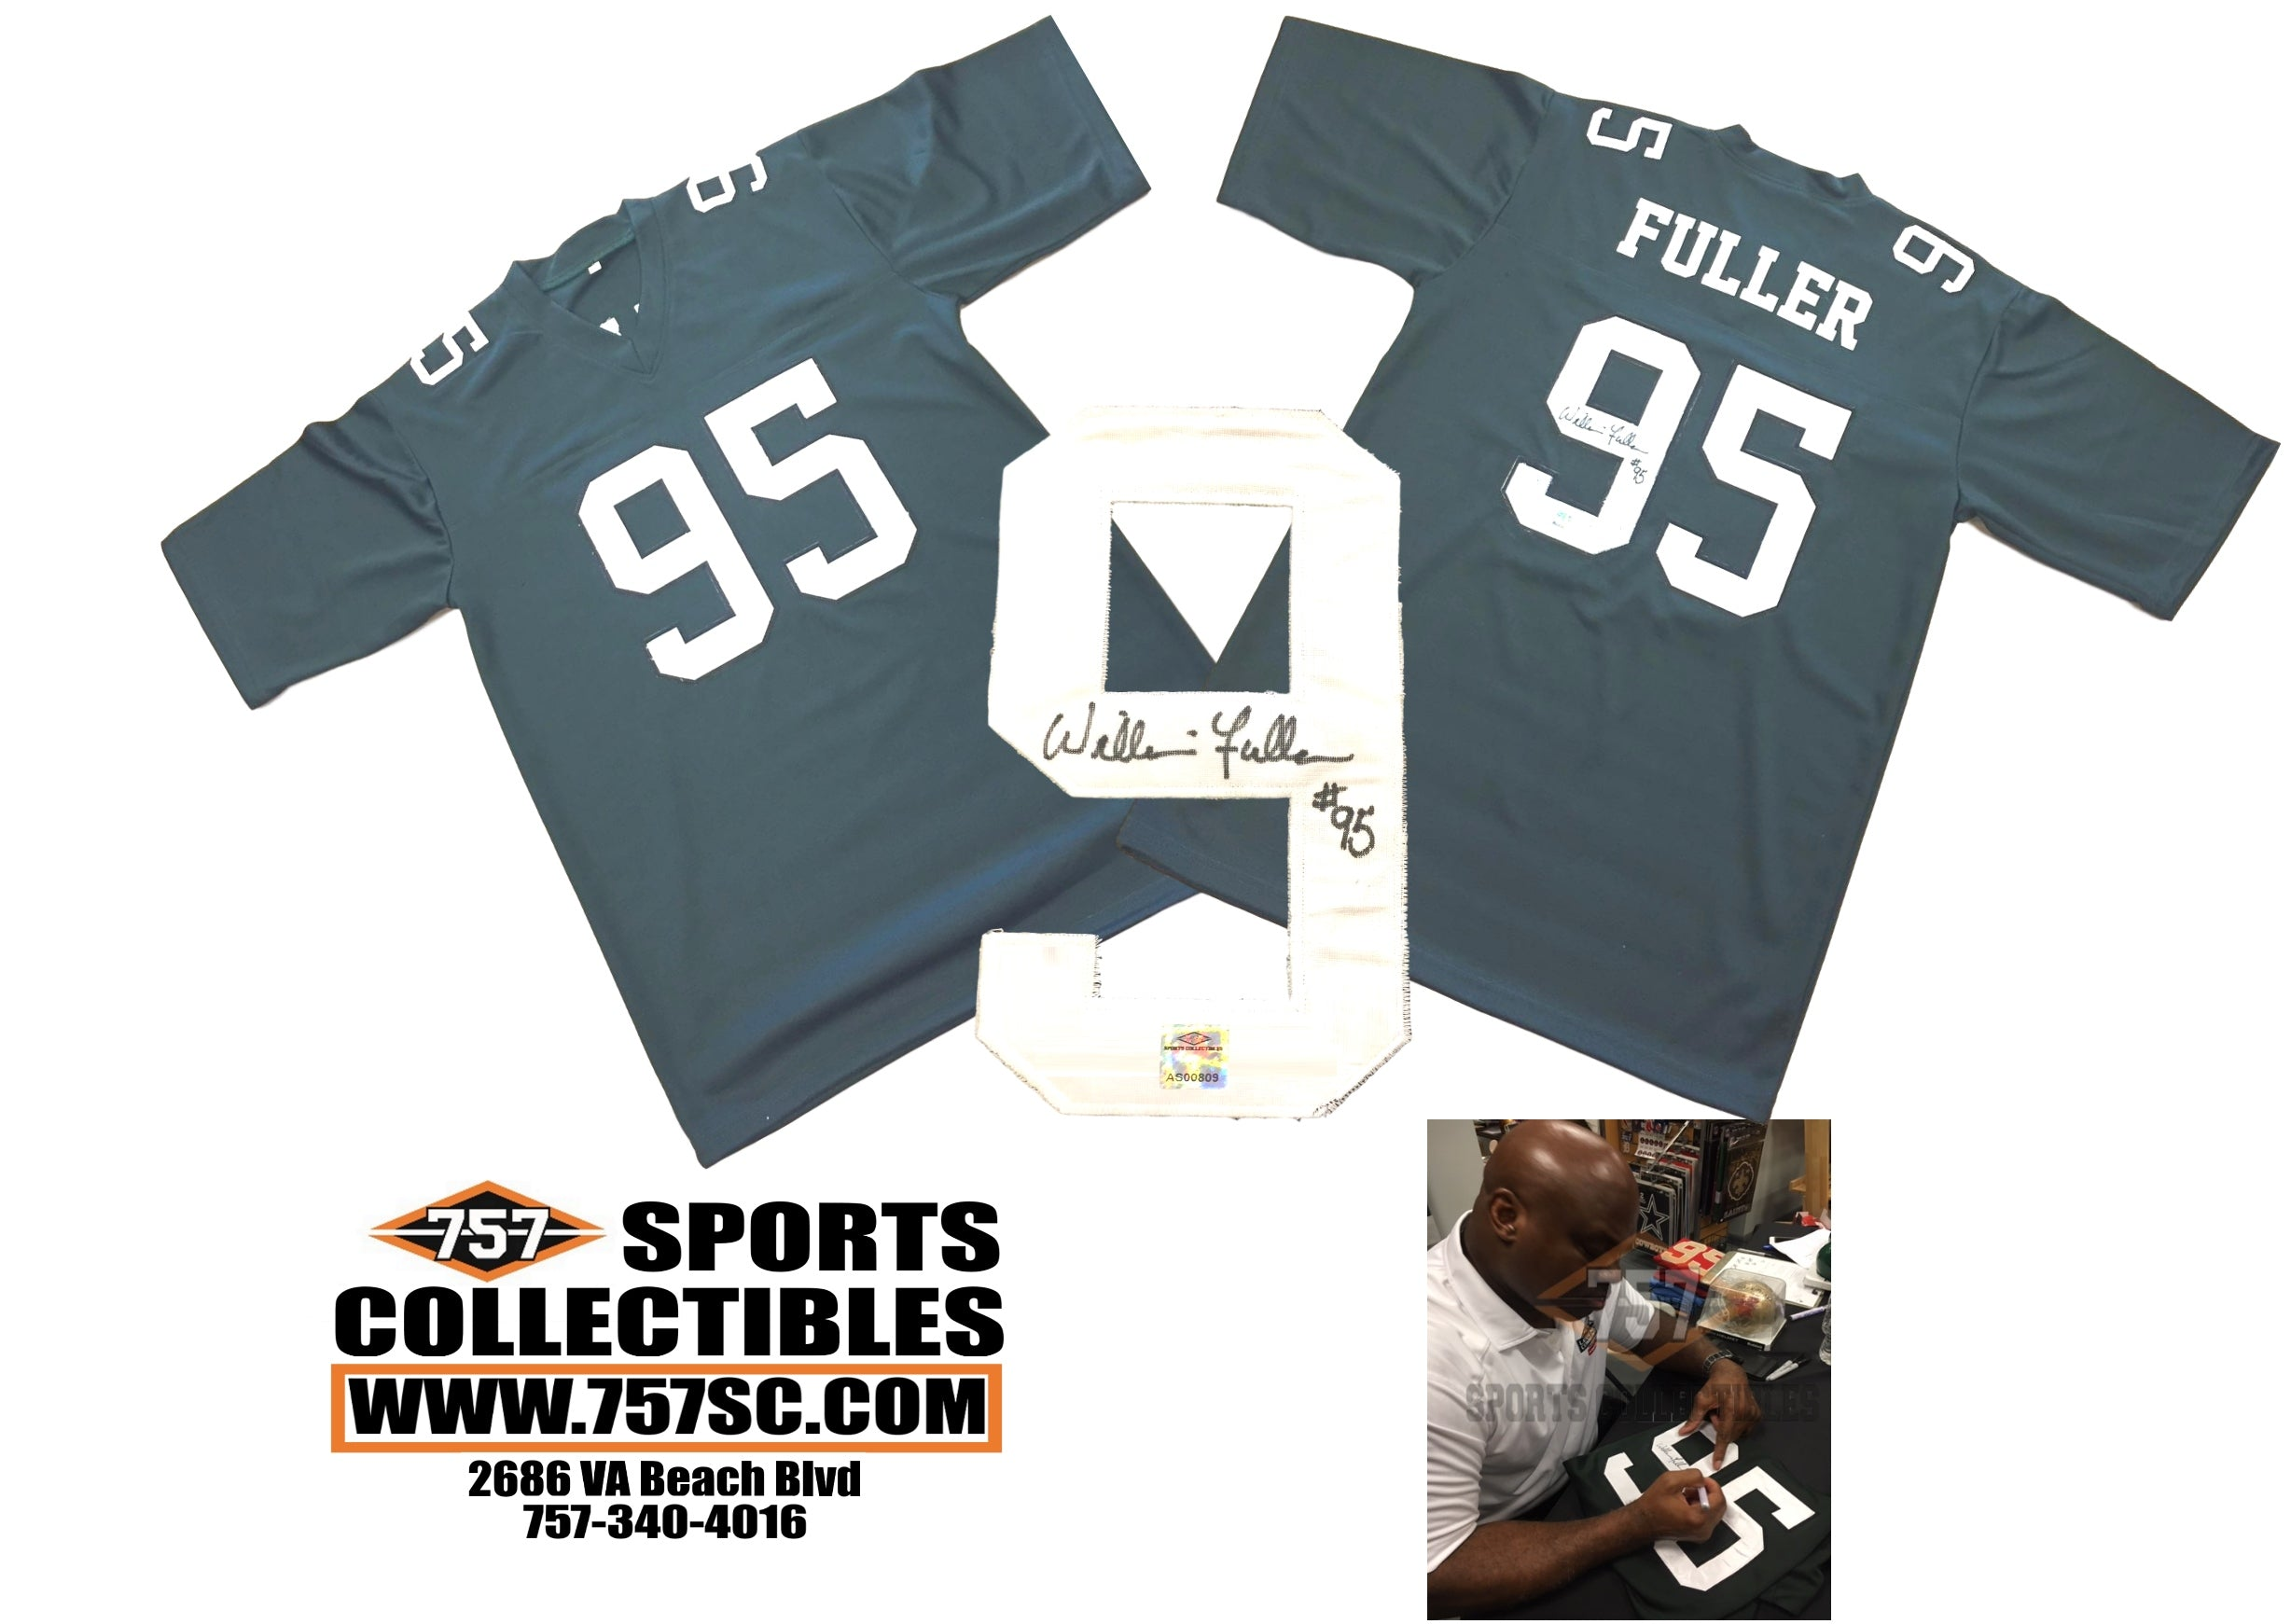 1d7a8fcd35d Philadelphia Eagles William Fuller Signed Autographed Green Custom Jersey  (JSA PSA Pass) 757